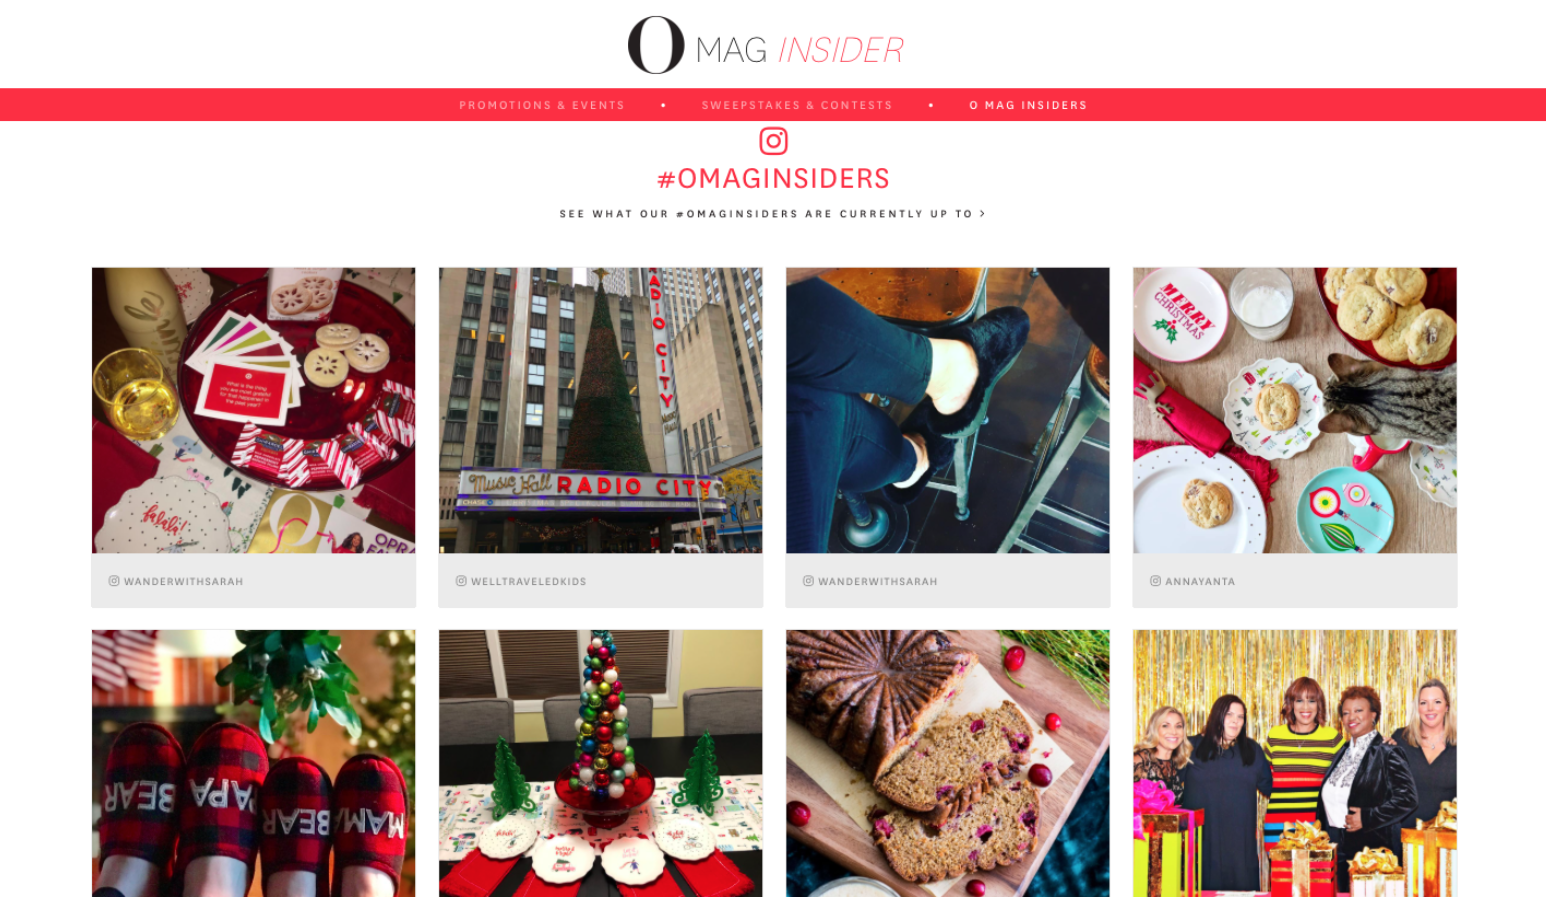 Juicer's social wall on O Mag Insider